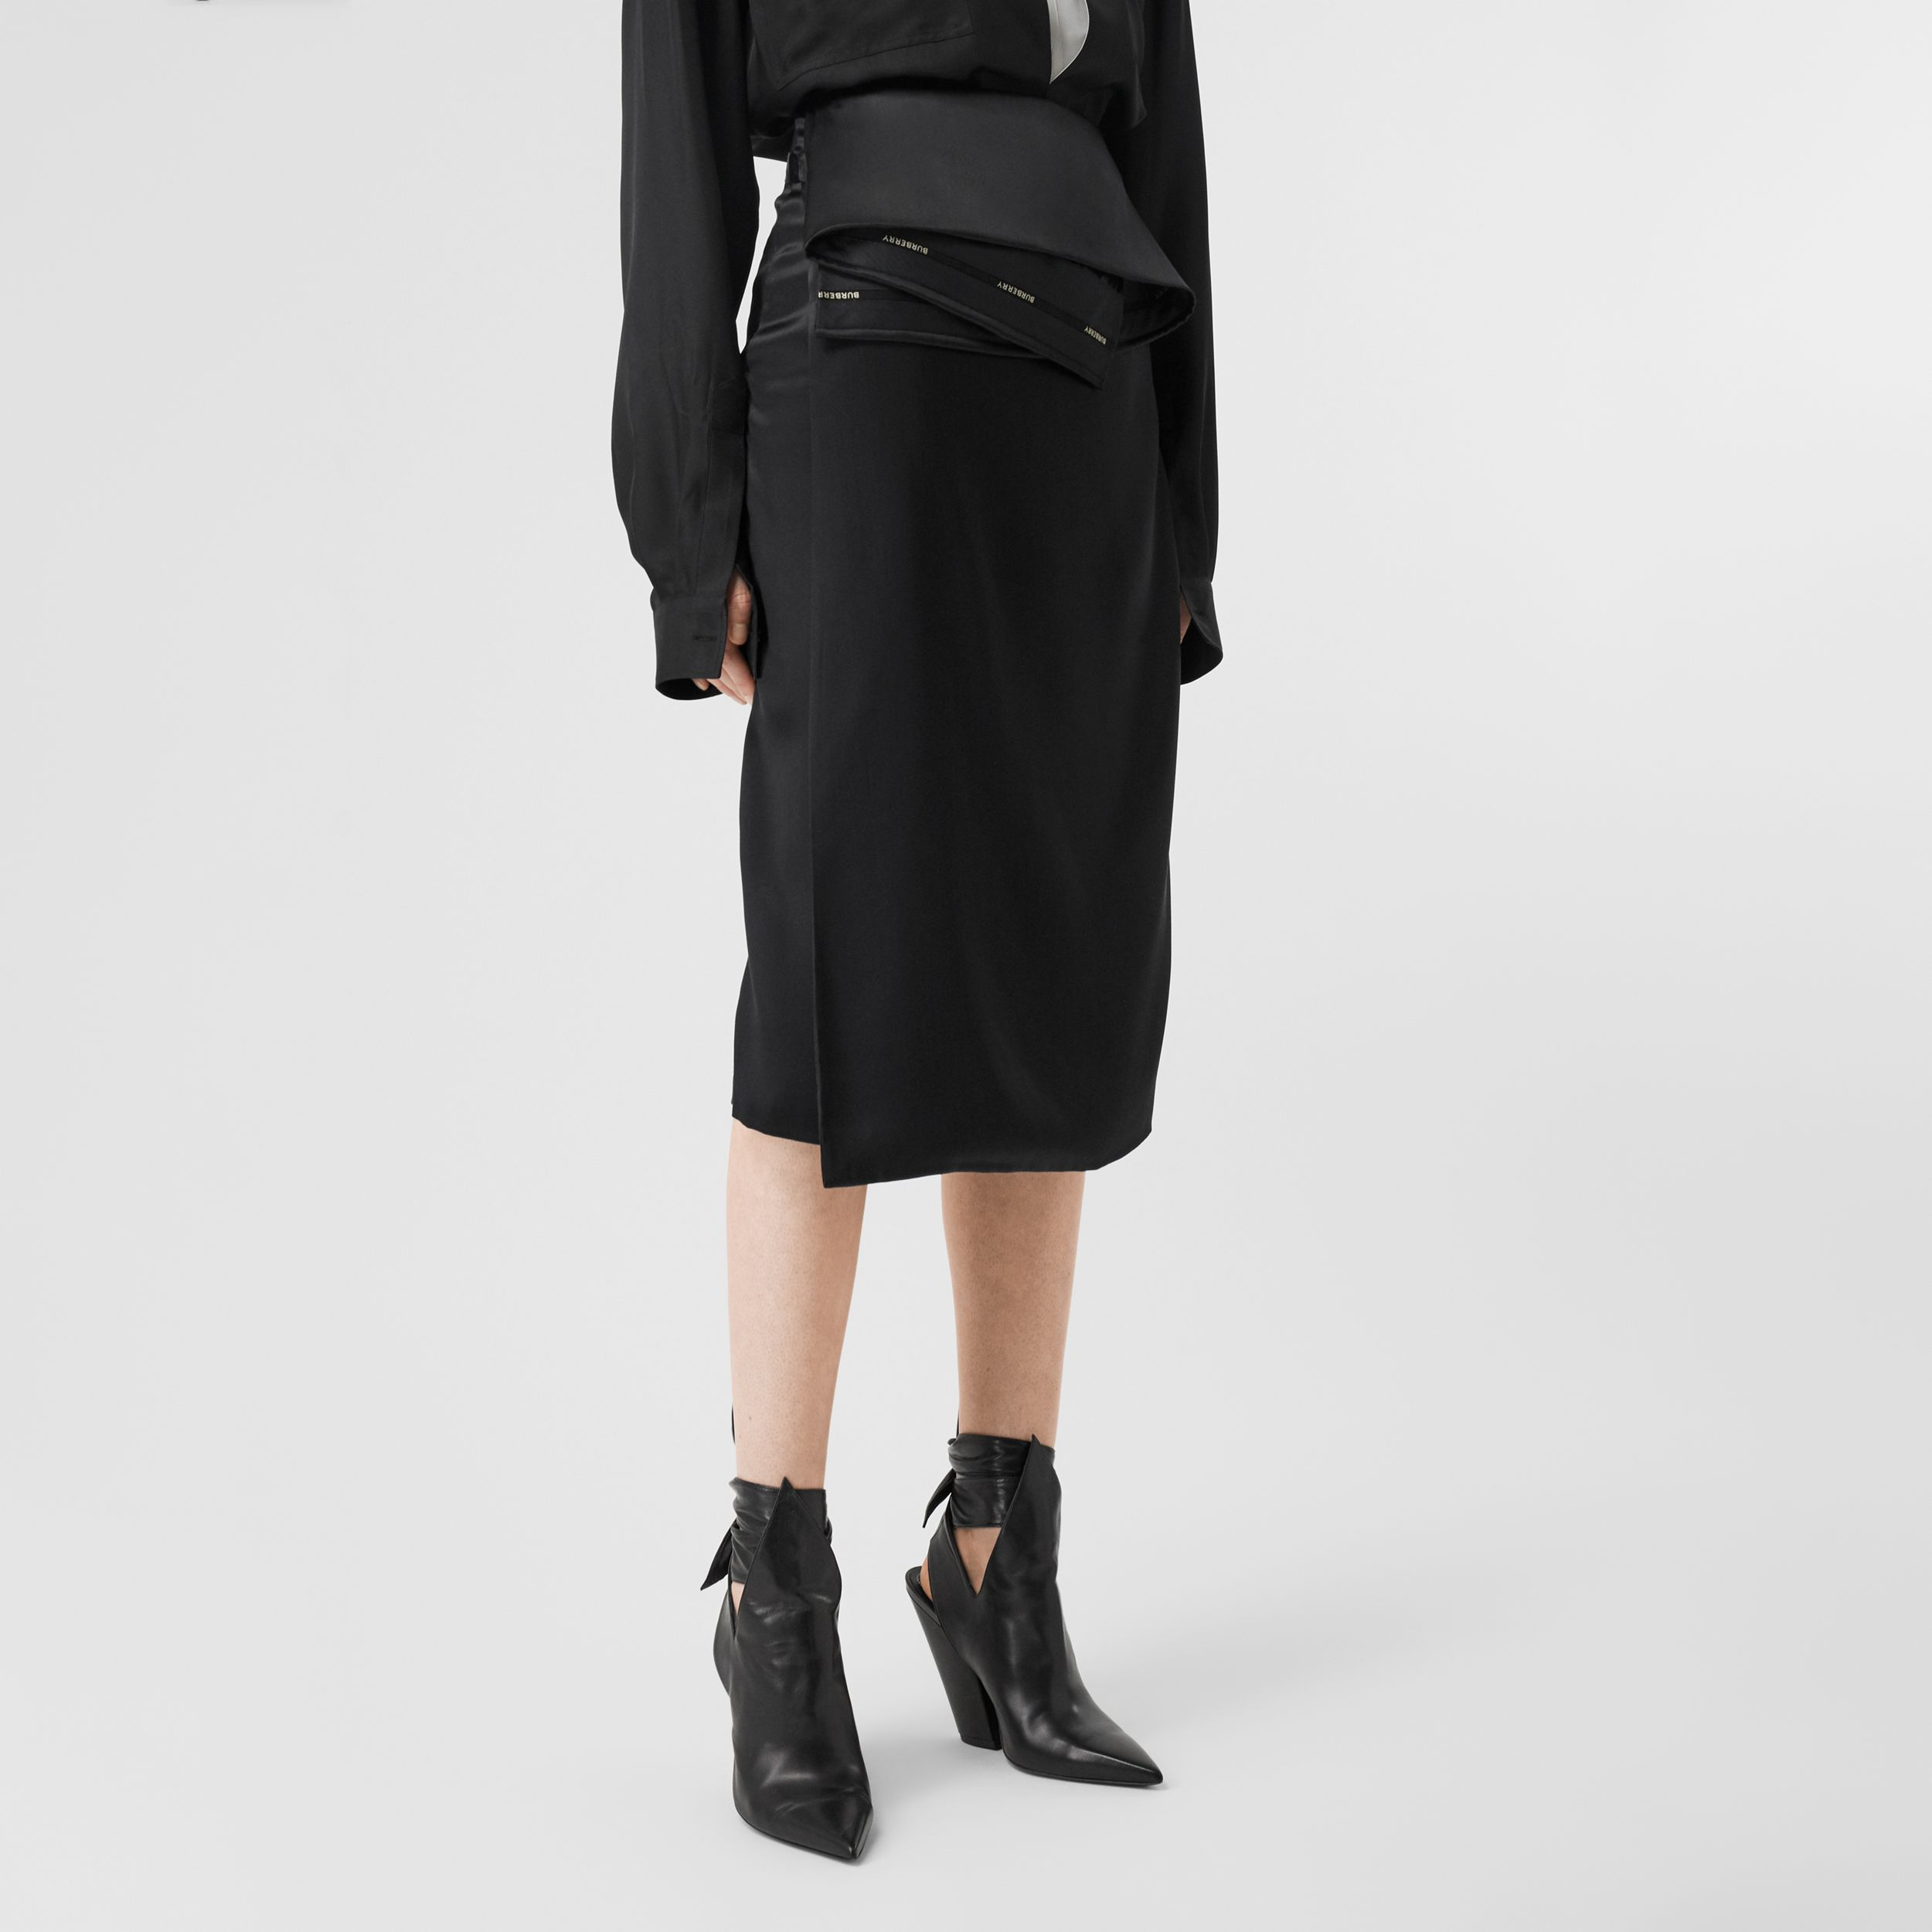 Silk Satin Foldover Skirt in Black - Women | Burberry - 3